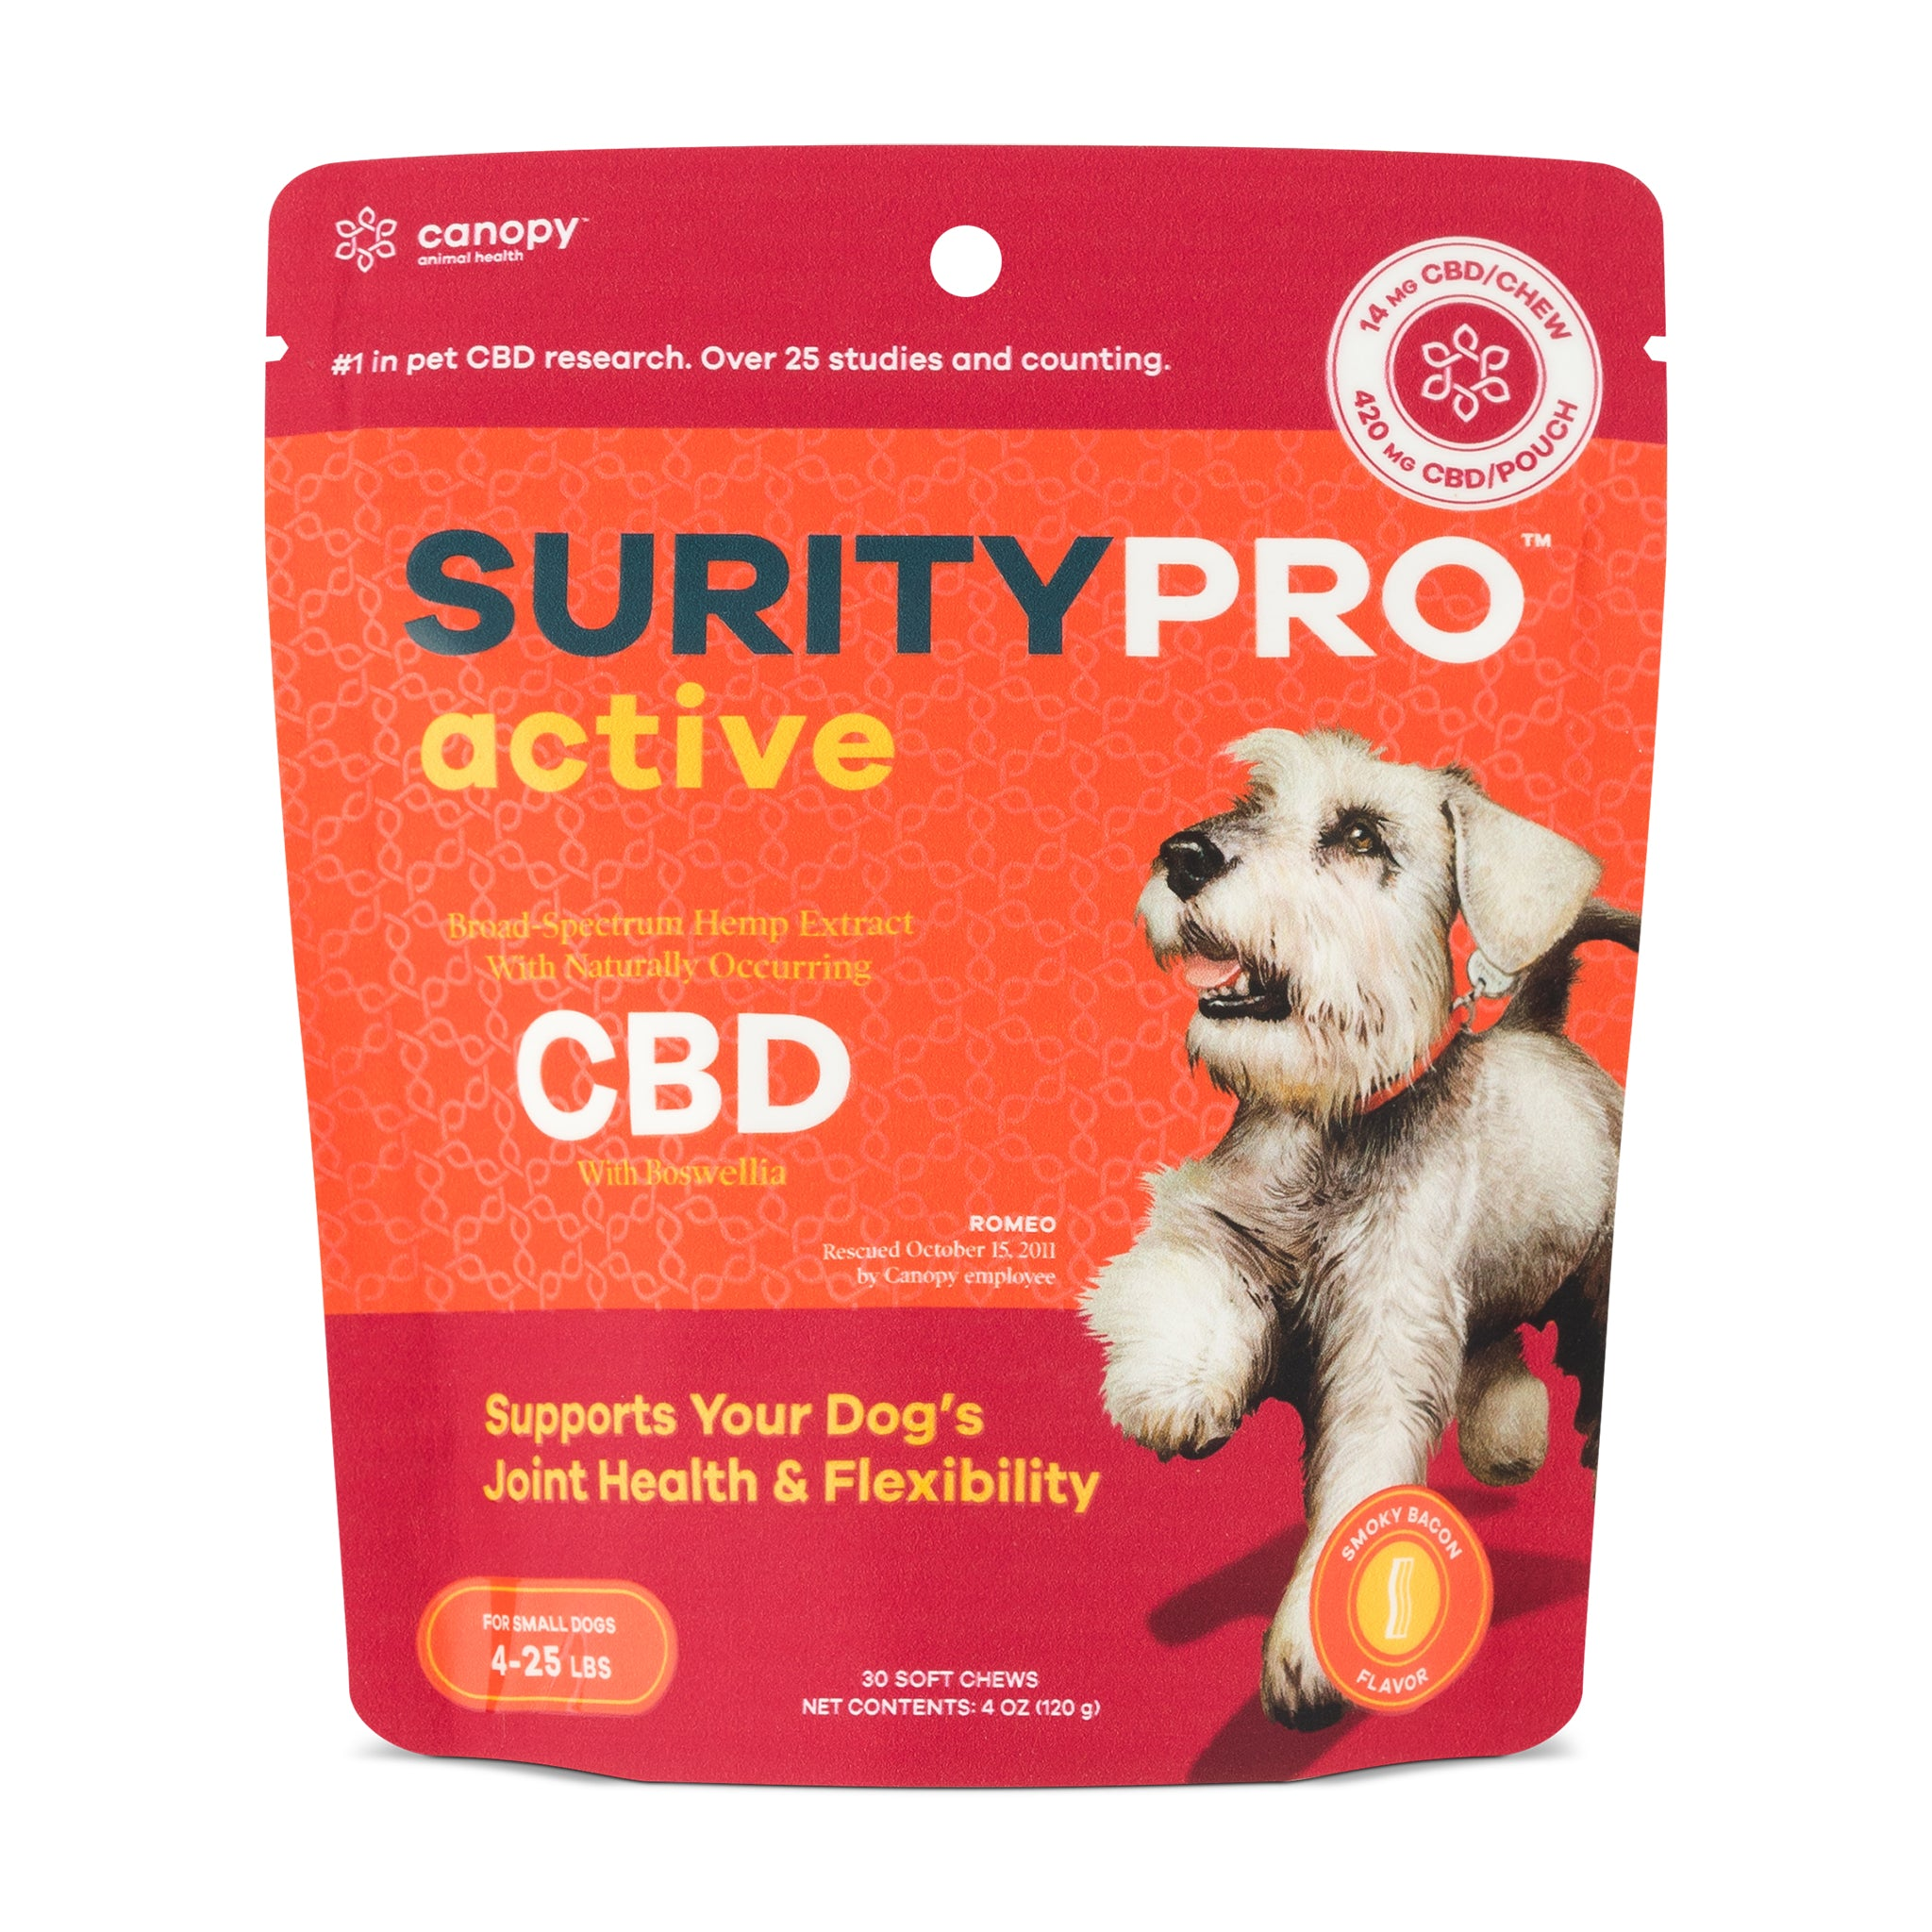 SurityPro Active Smoky Bacon Flavor Soft Chews